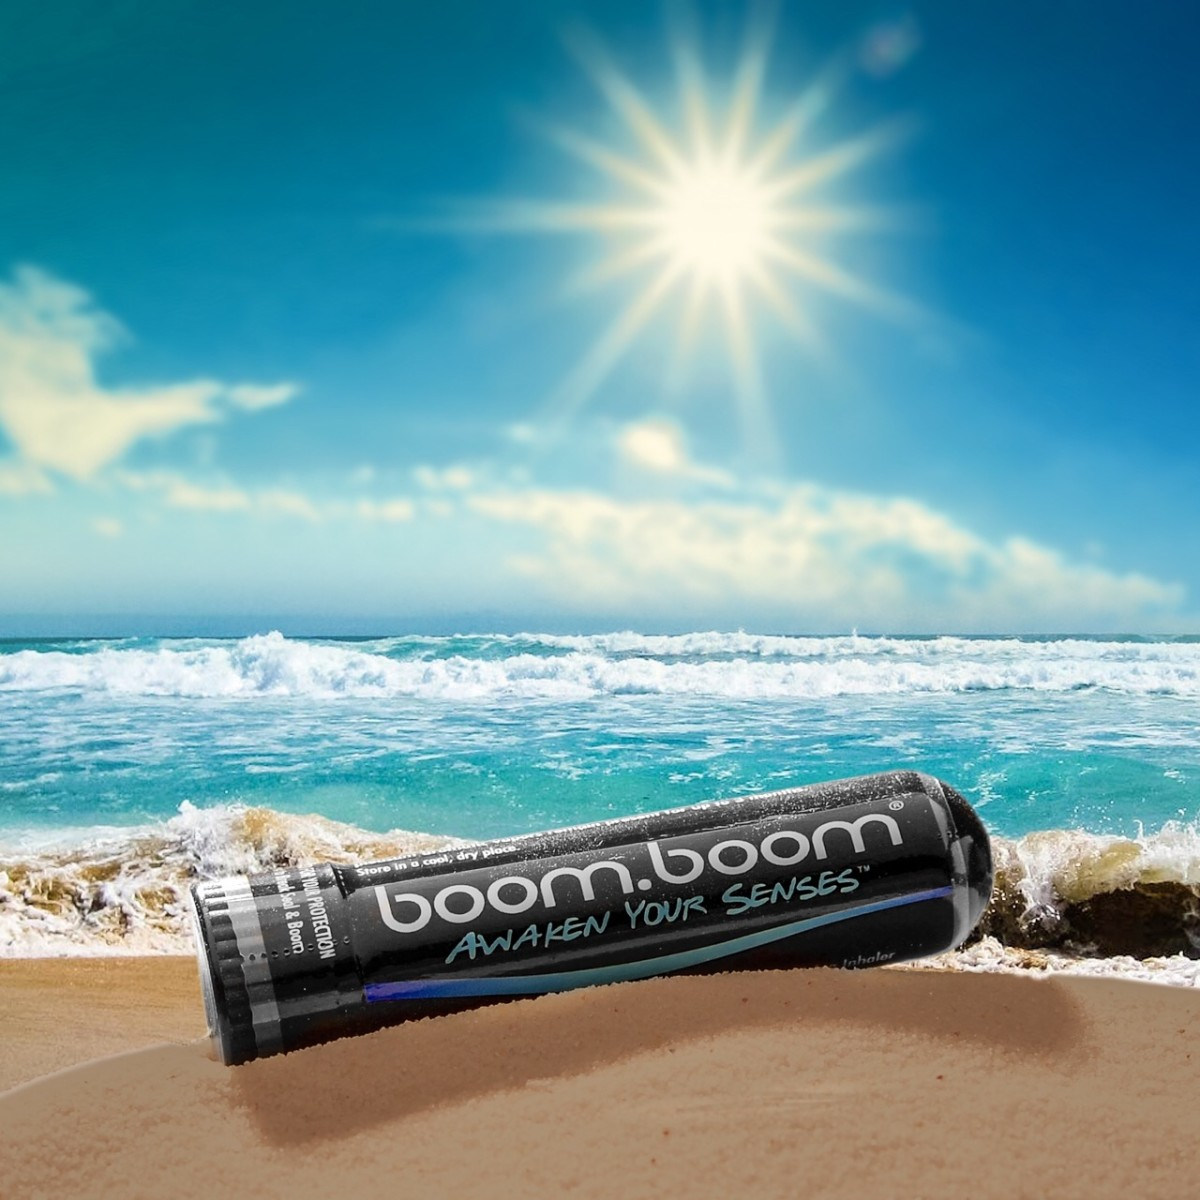 boomboom on the beach